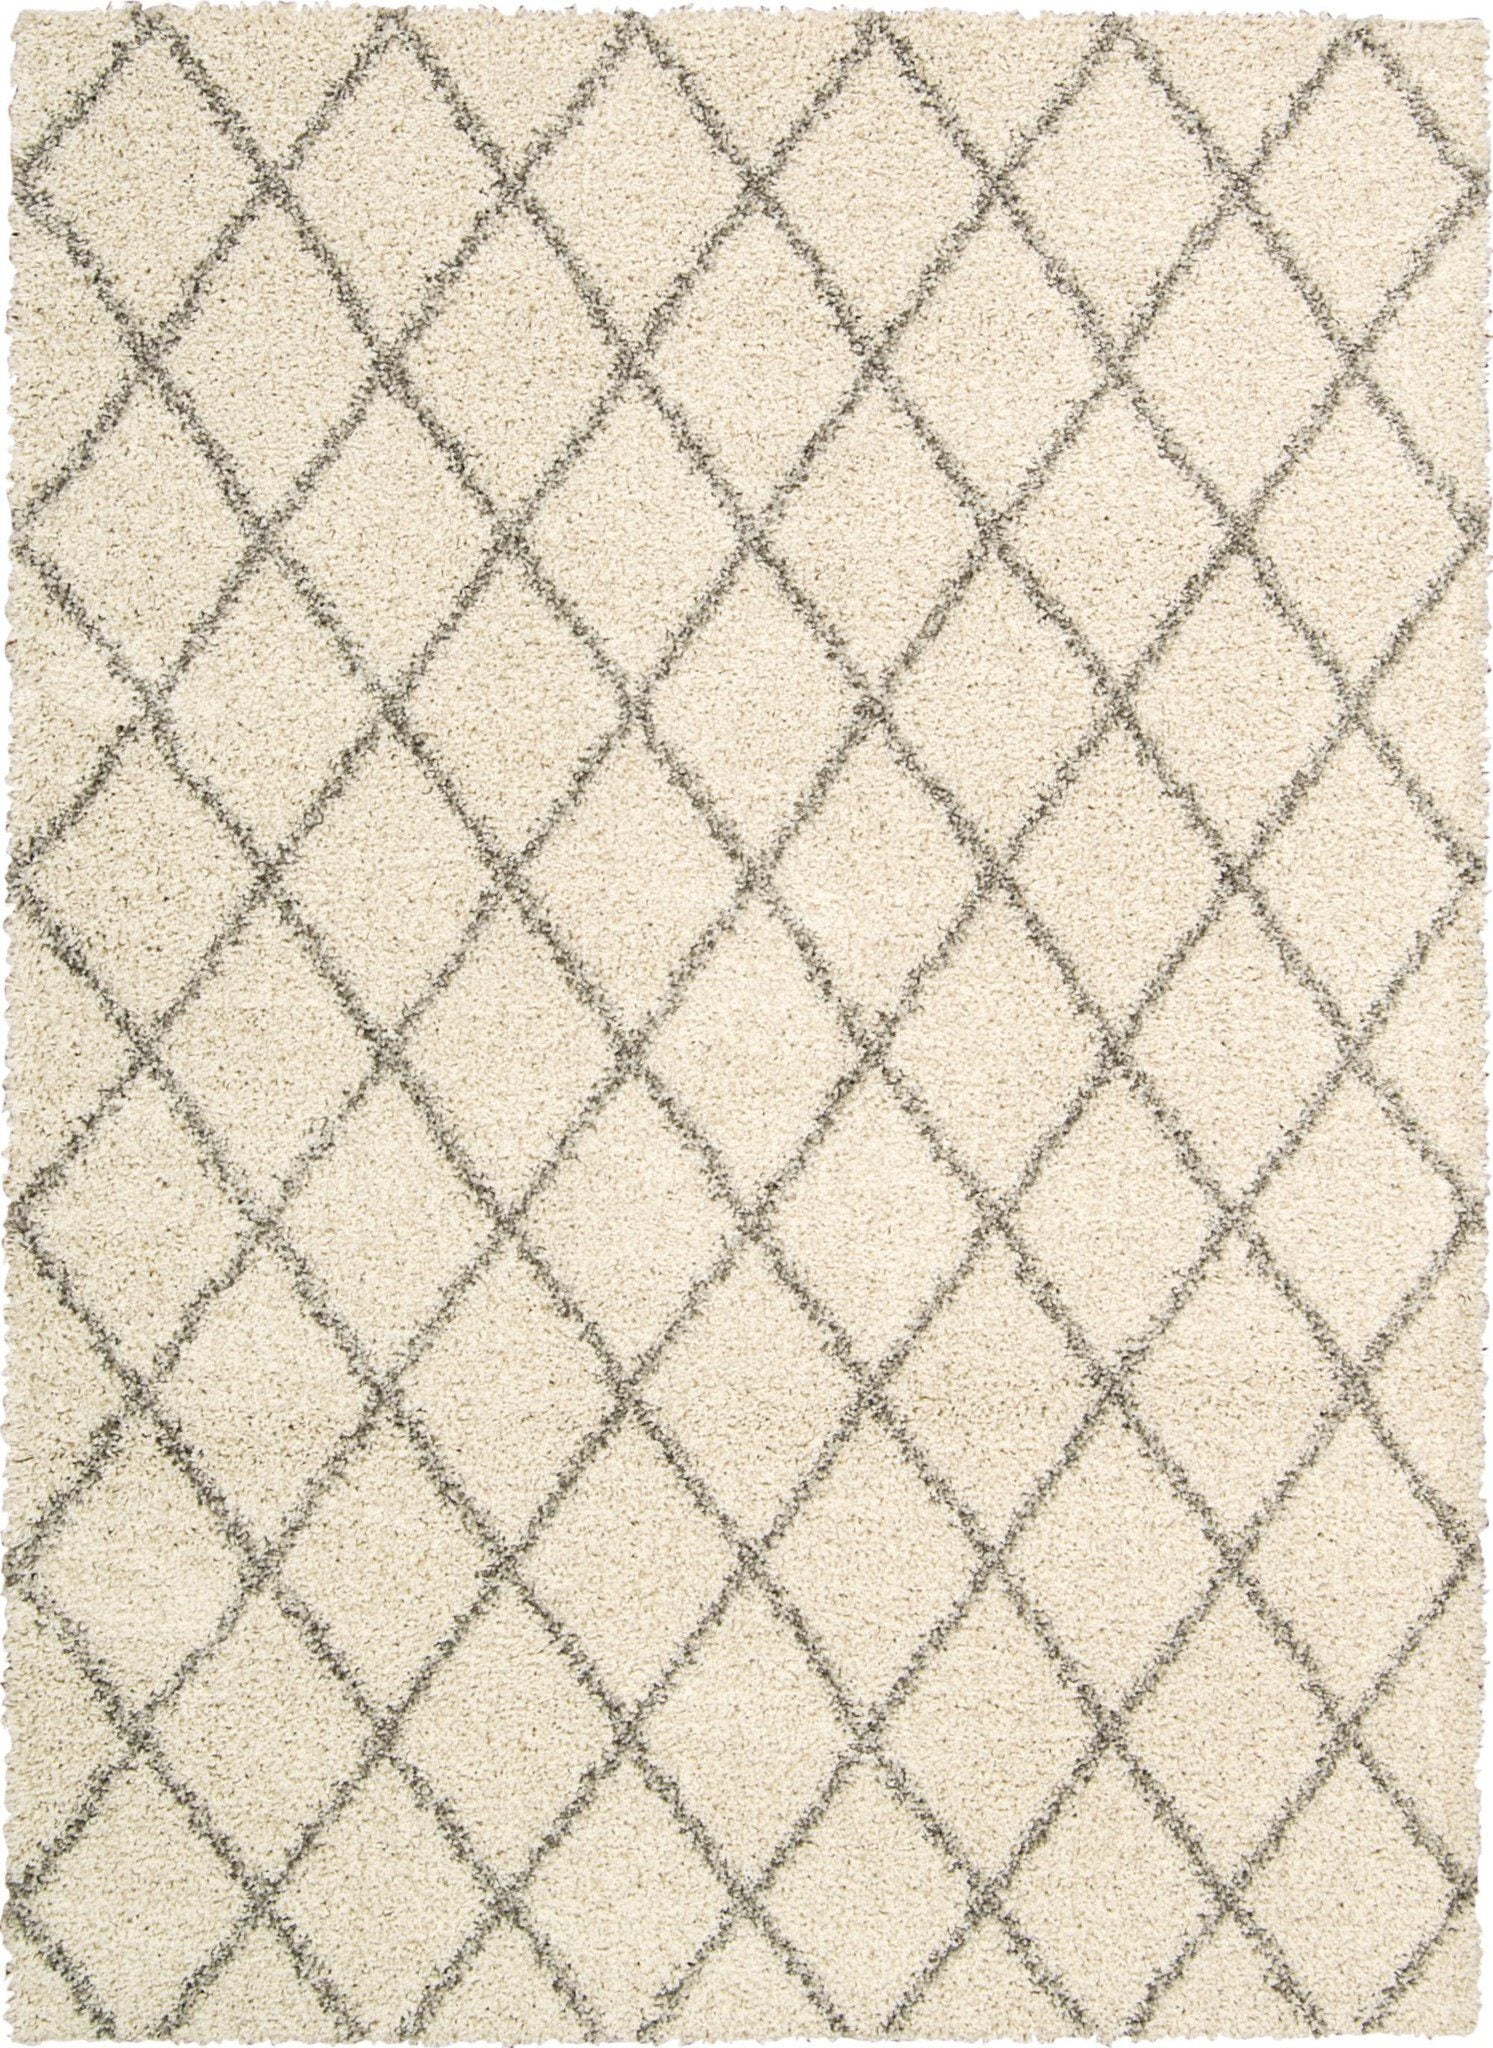 Brisbane Cream Shag Area Rug 5' x 7' Rugs Nourison Cream